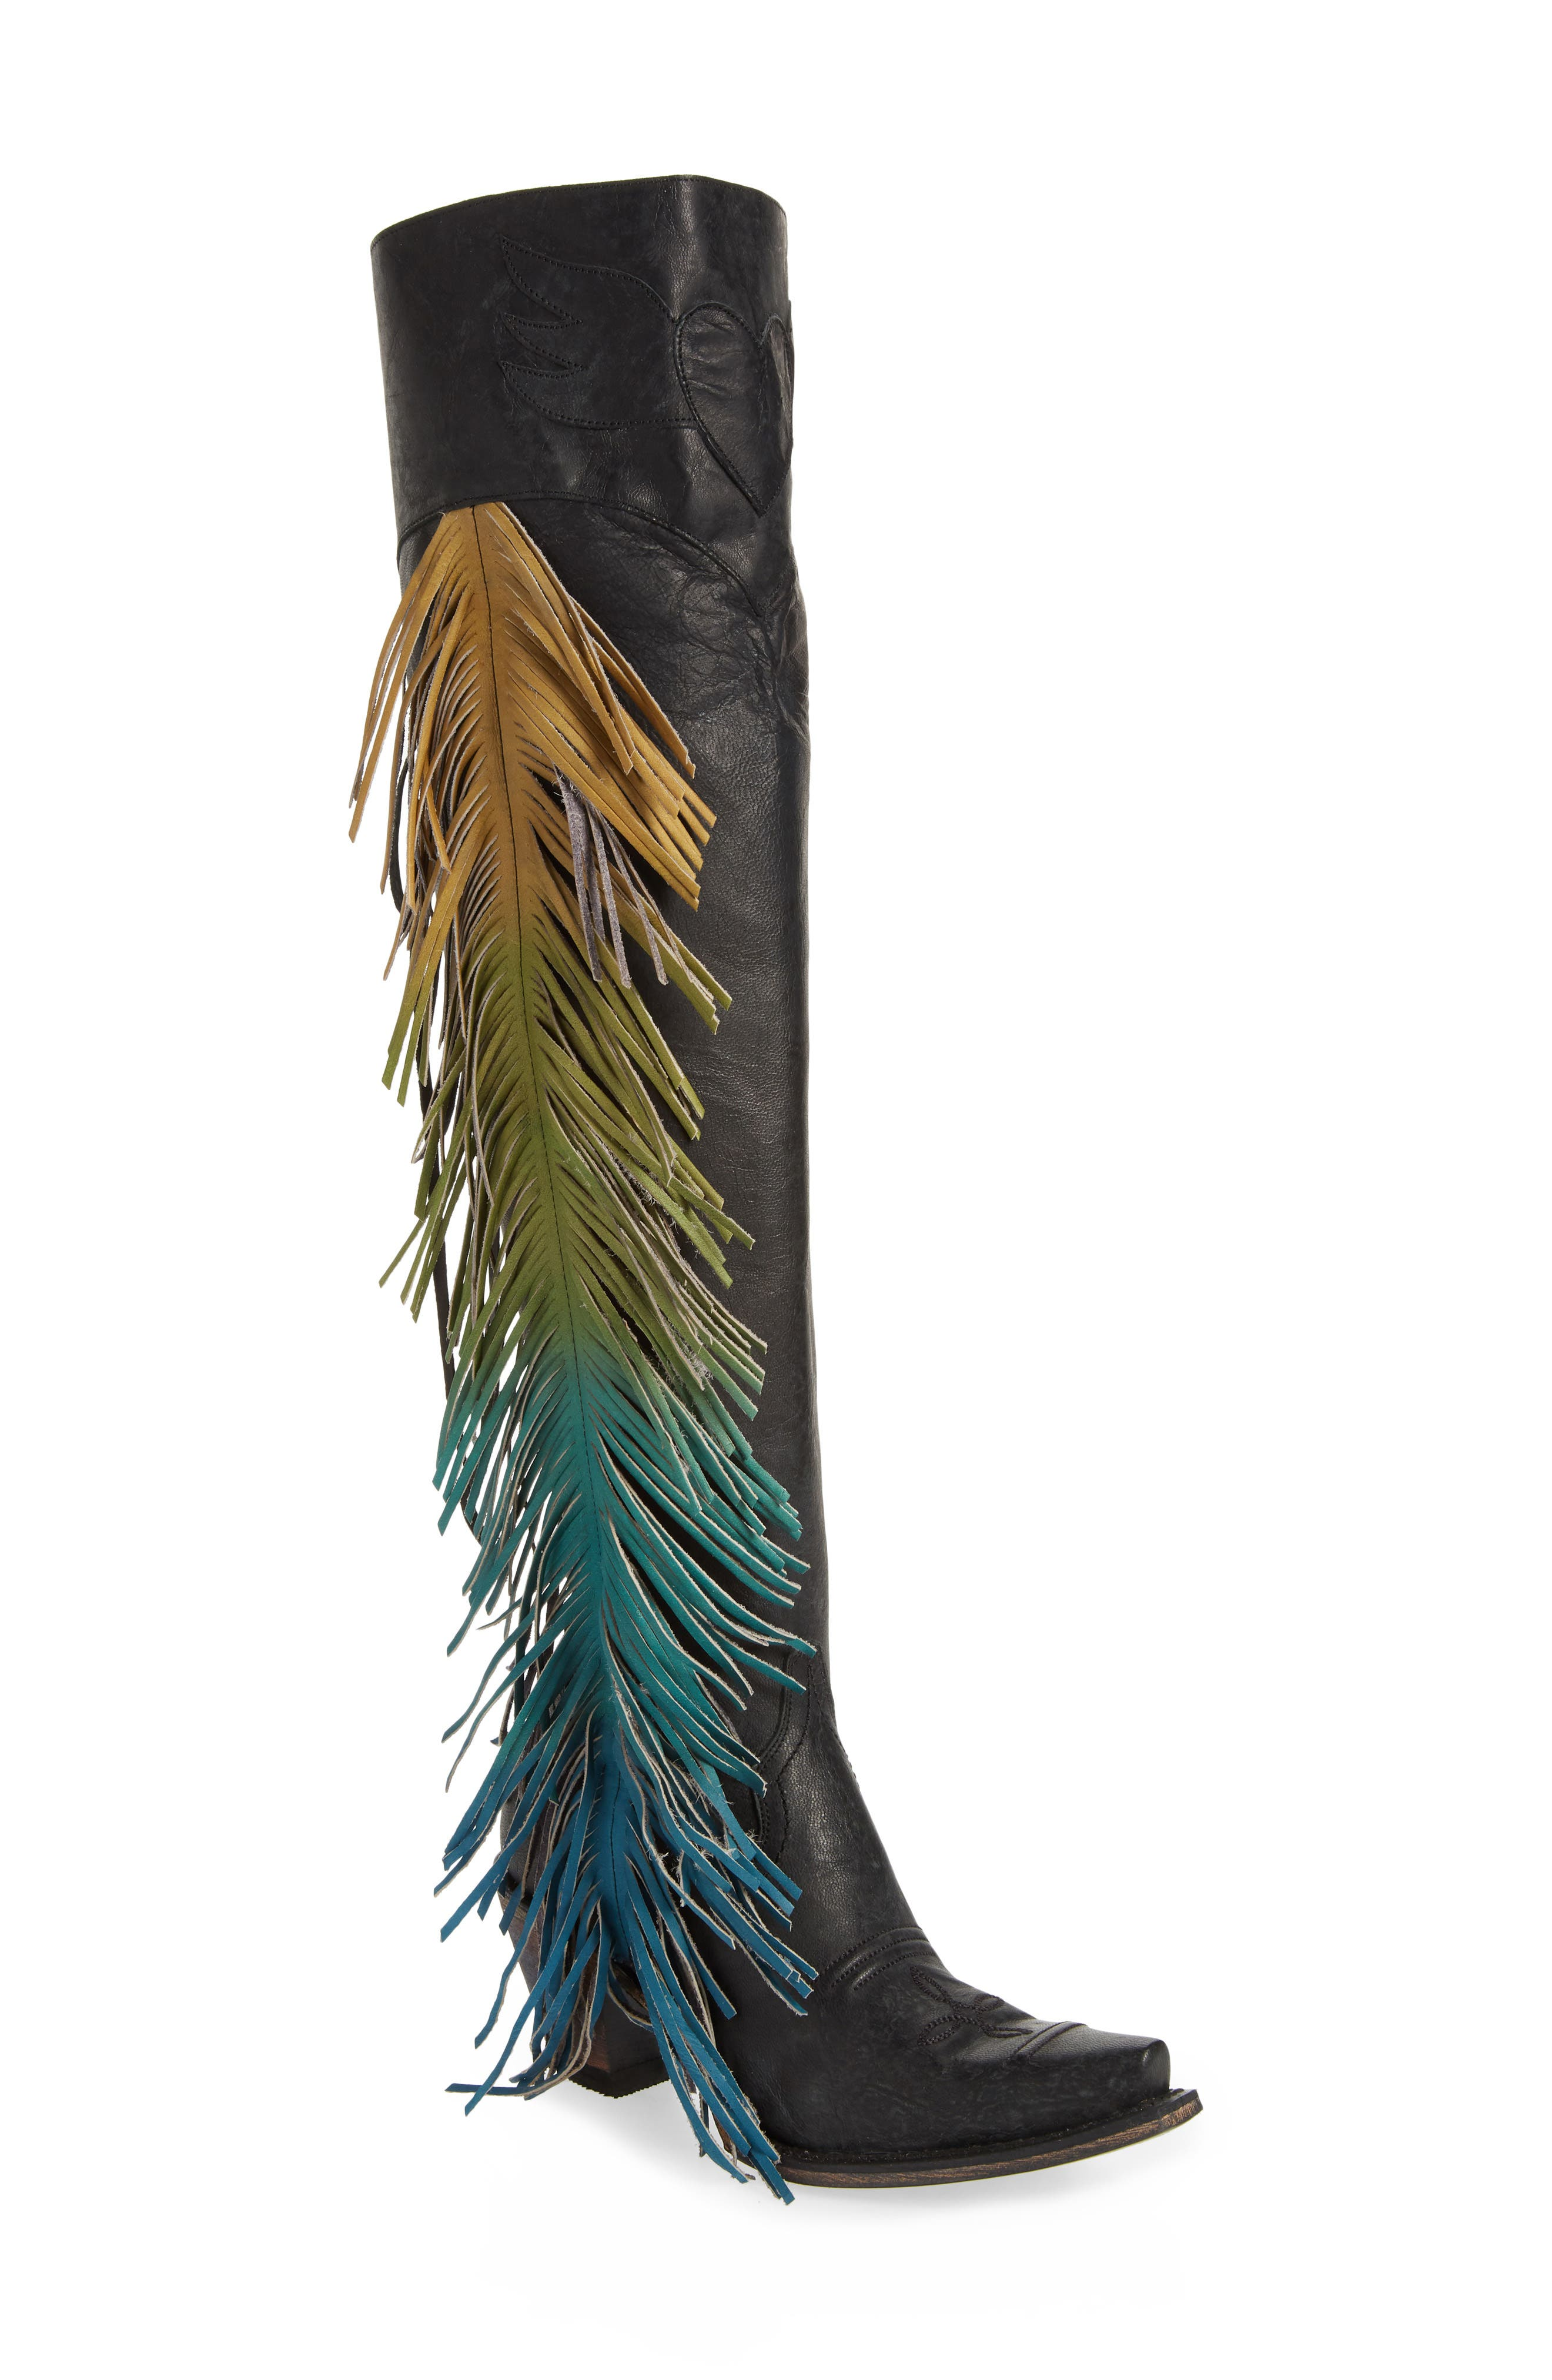 Lane Boots X Junk Gypsy Fringe Over The Knee Western Boot- Black